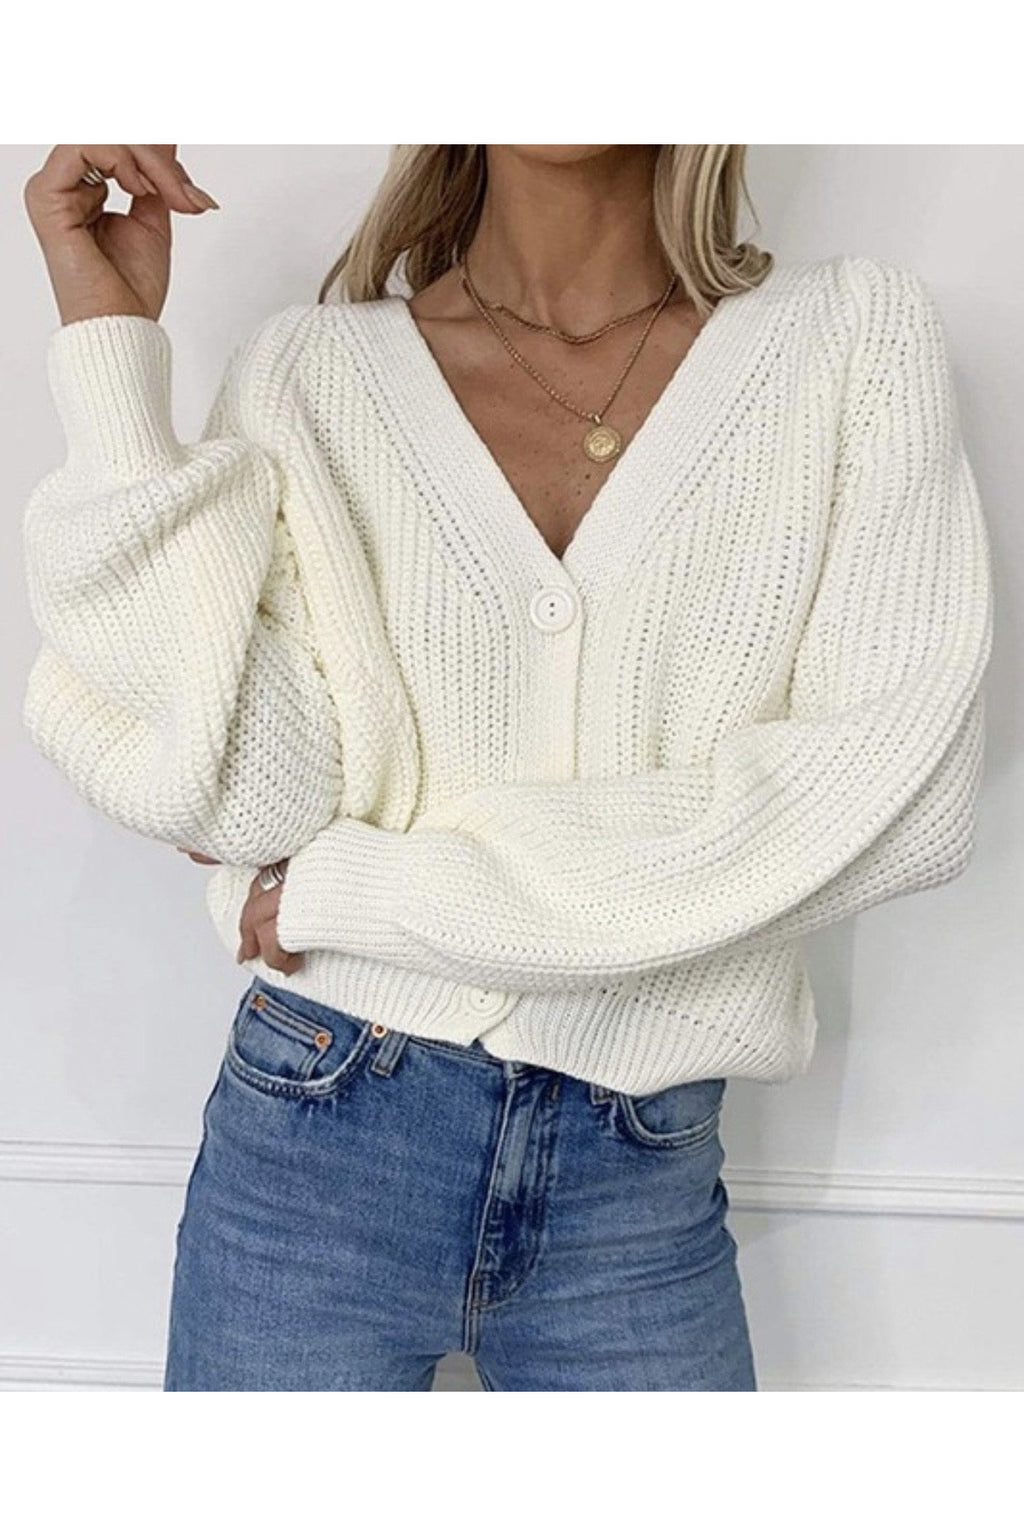 Effie Cropped Cardigan in White